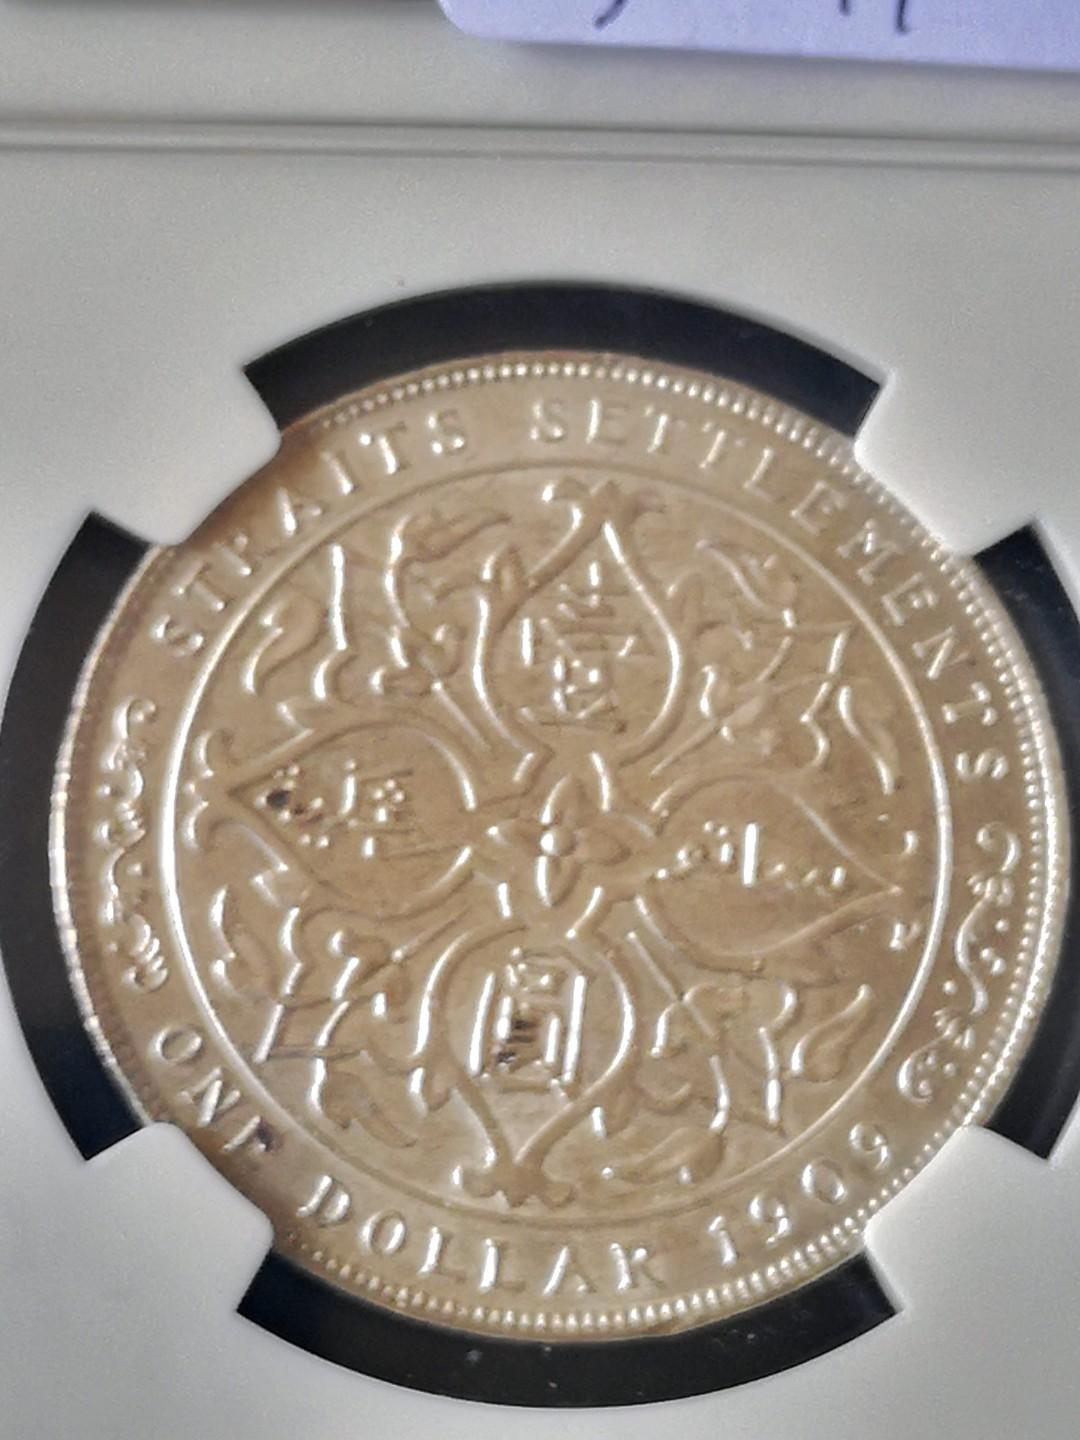 Straits settlement $1, the scarce date 1909 NGC graded MS 63 nice rare